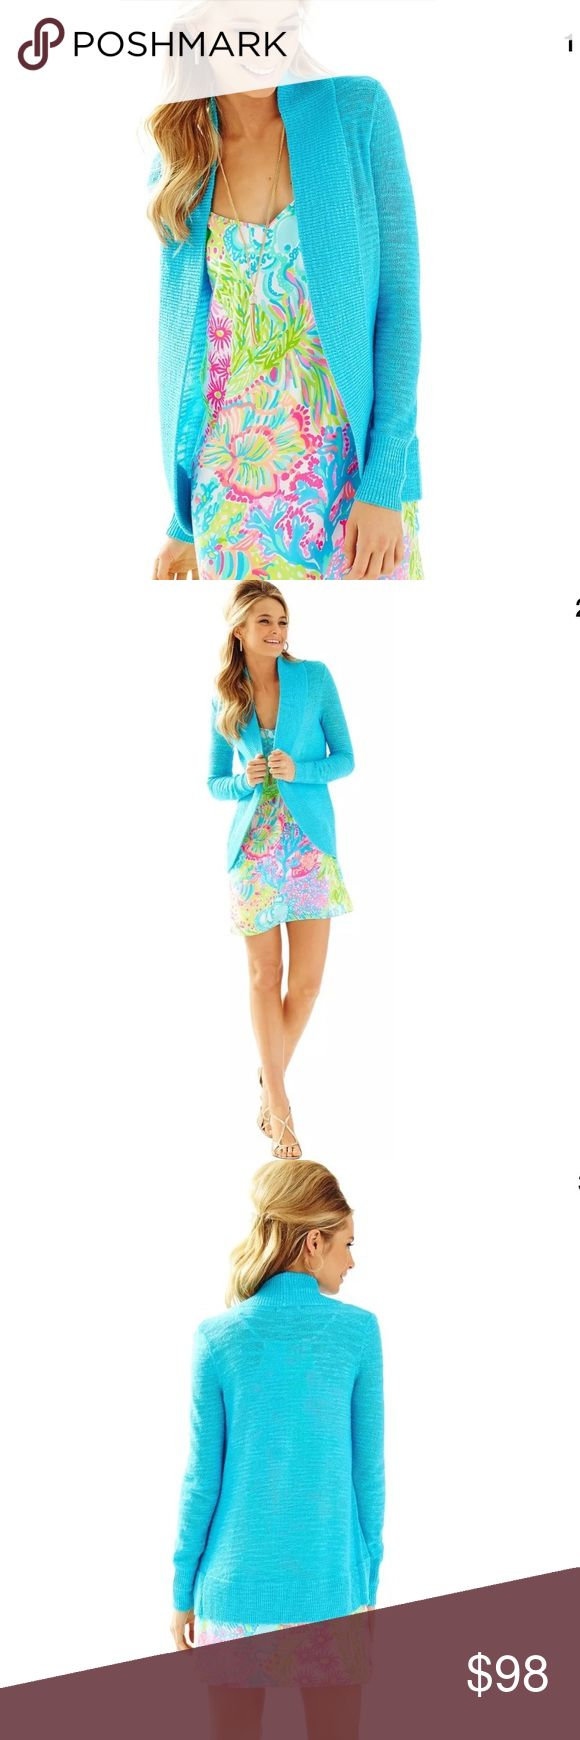 NWT Lilly Pulitzer Amalie Cardigan Pool Blue Sz S The Amalie Open Front Cardigan was made with light viscose yarn to be the perfect spring weight cardigan to wear with leggings, tunics, maxi dresses, you name it!. Its longer length is perfect for wearing over shorts on cooler nights,and its open style makes it relaxed and casual for wearing to the beach or the bistro.  Long Sleeve Longer Length Open Cardigan. Viscose Polyester (68% Viscose, 32% Polyester). Machine Wash Cold. Imported. Lilly…